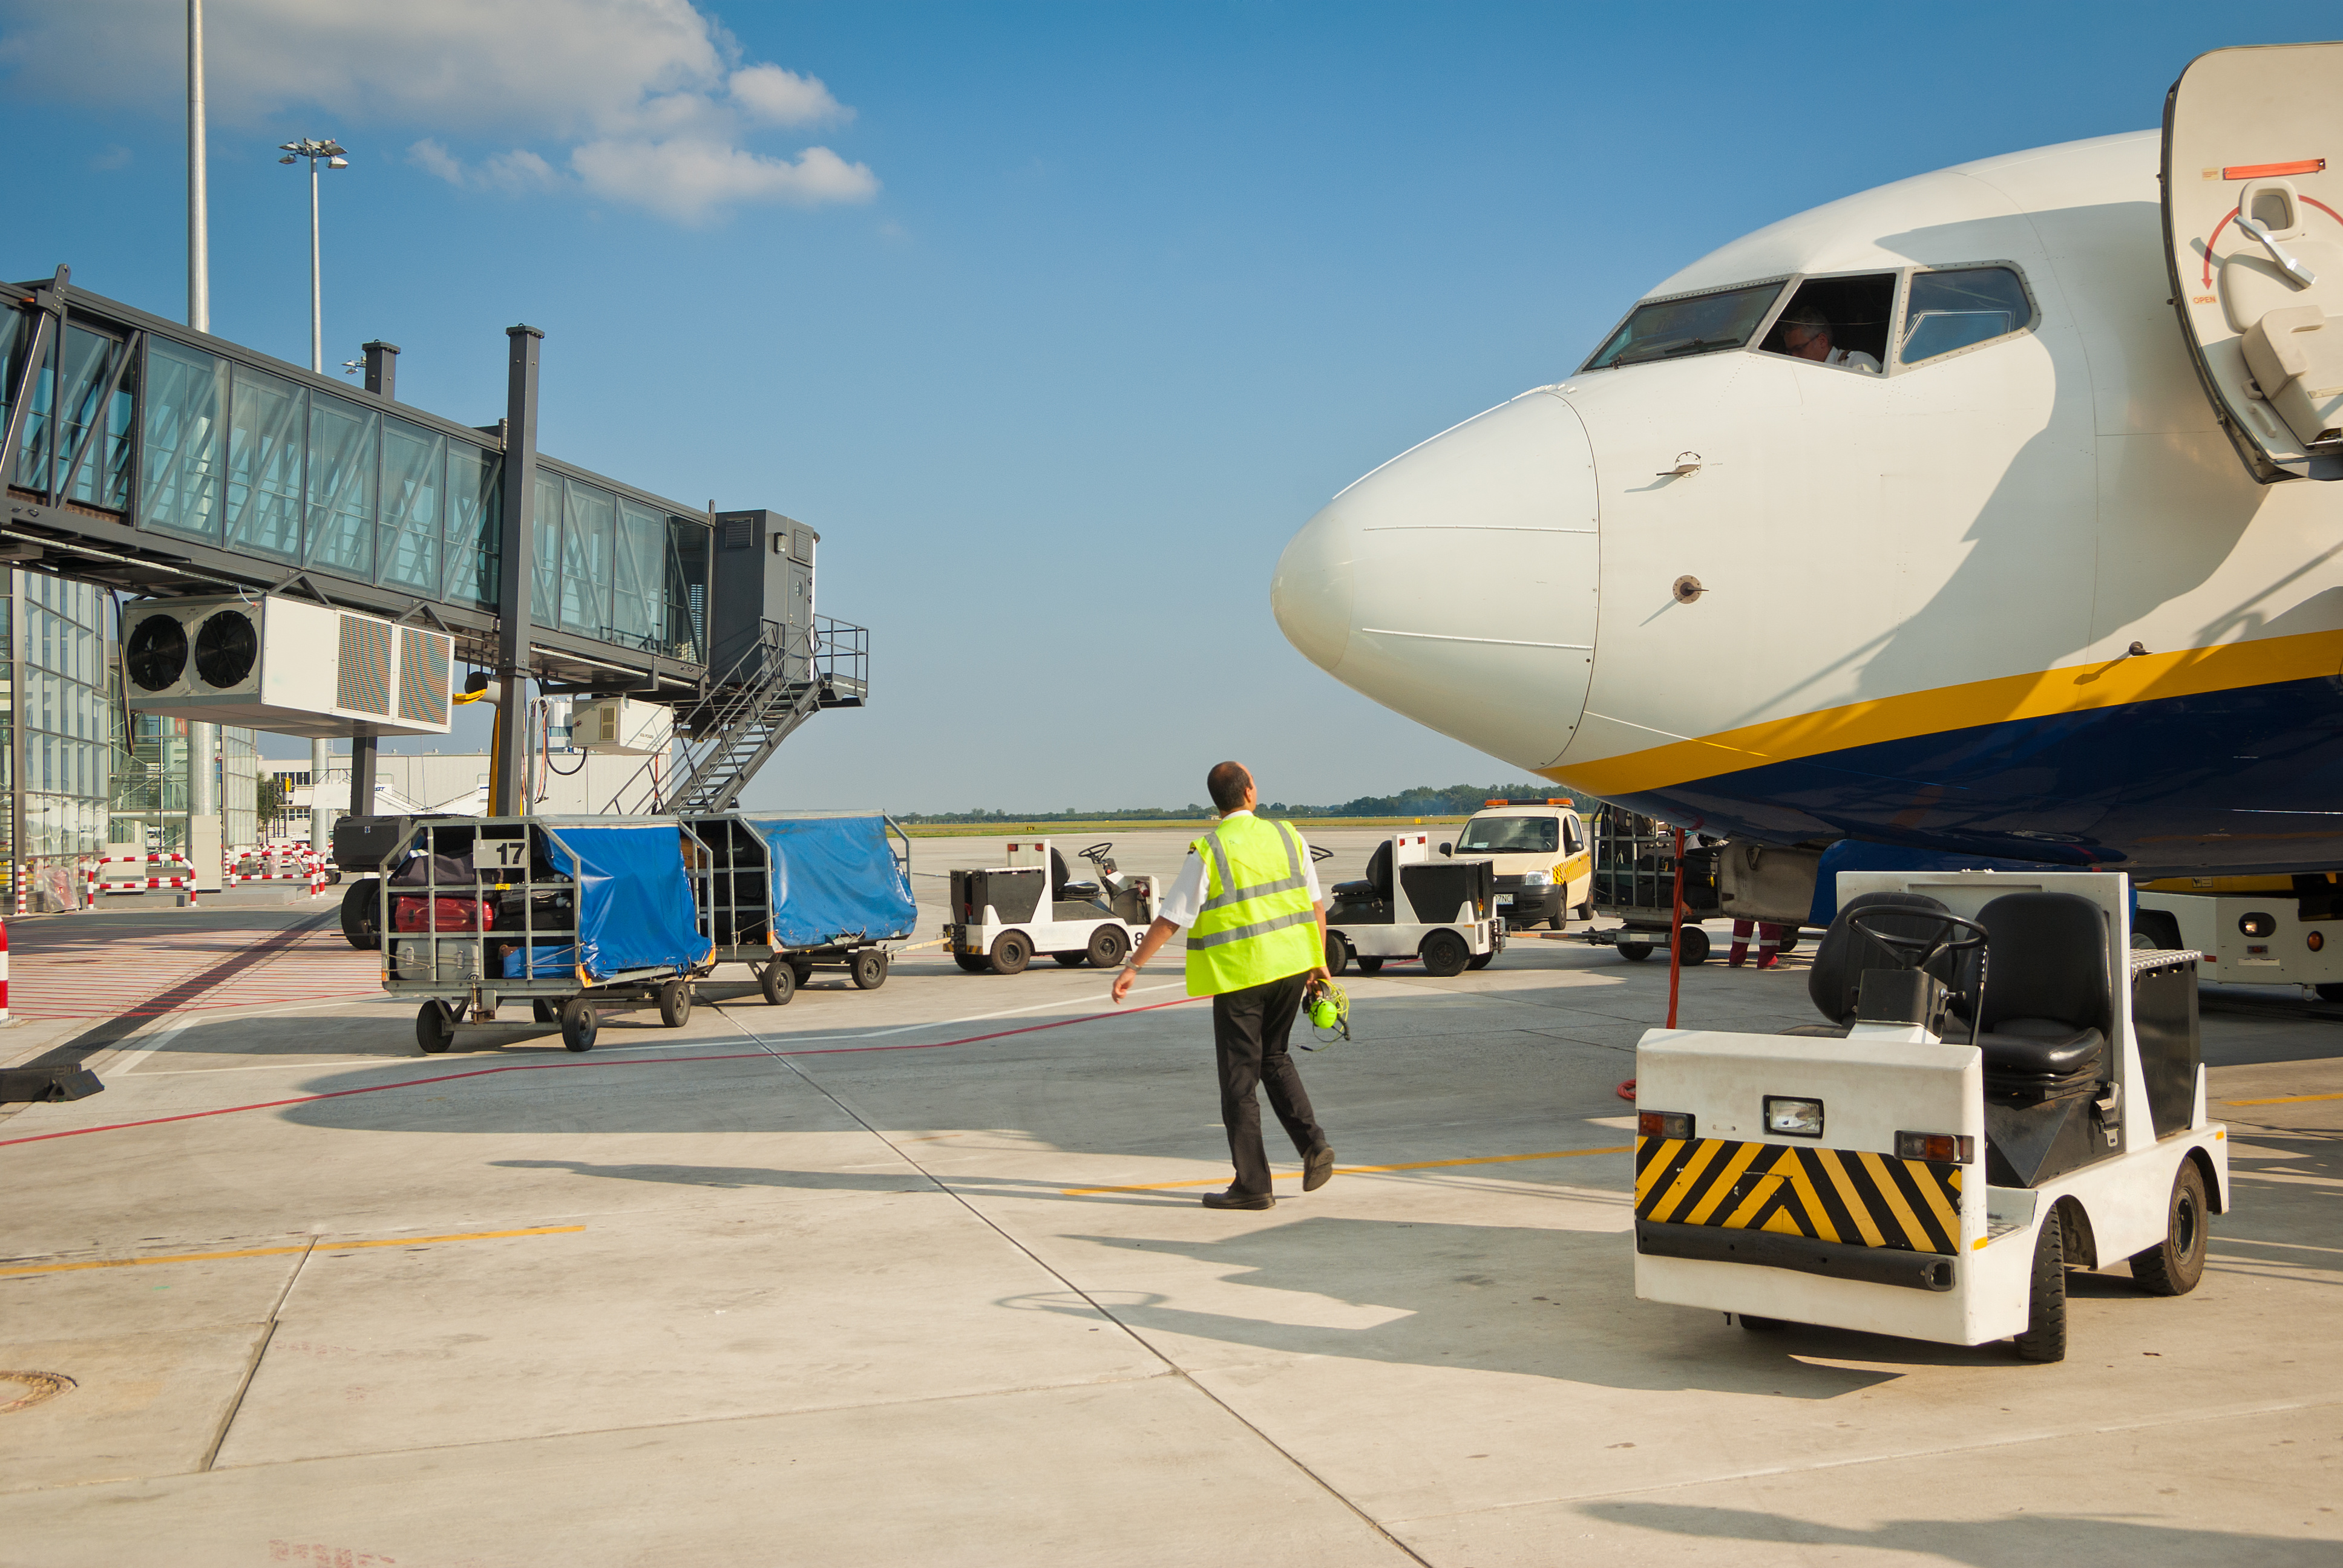 Air freight in transit between building and aircraft